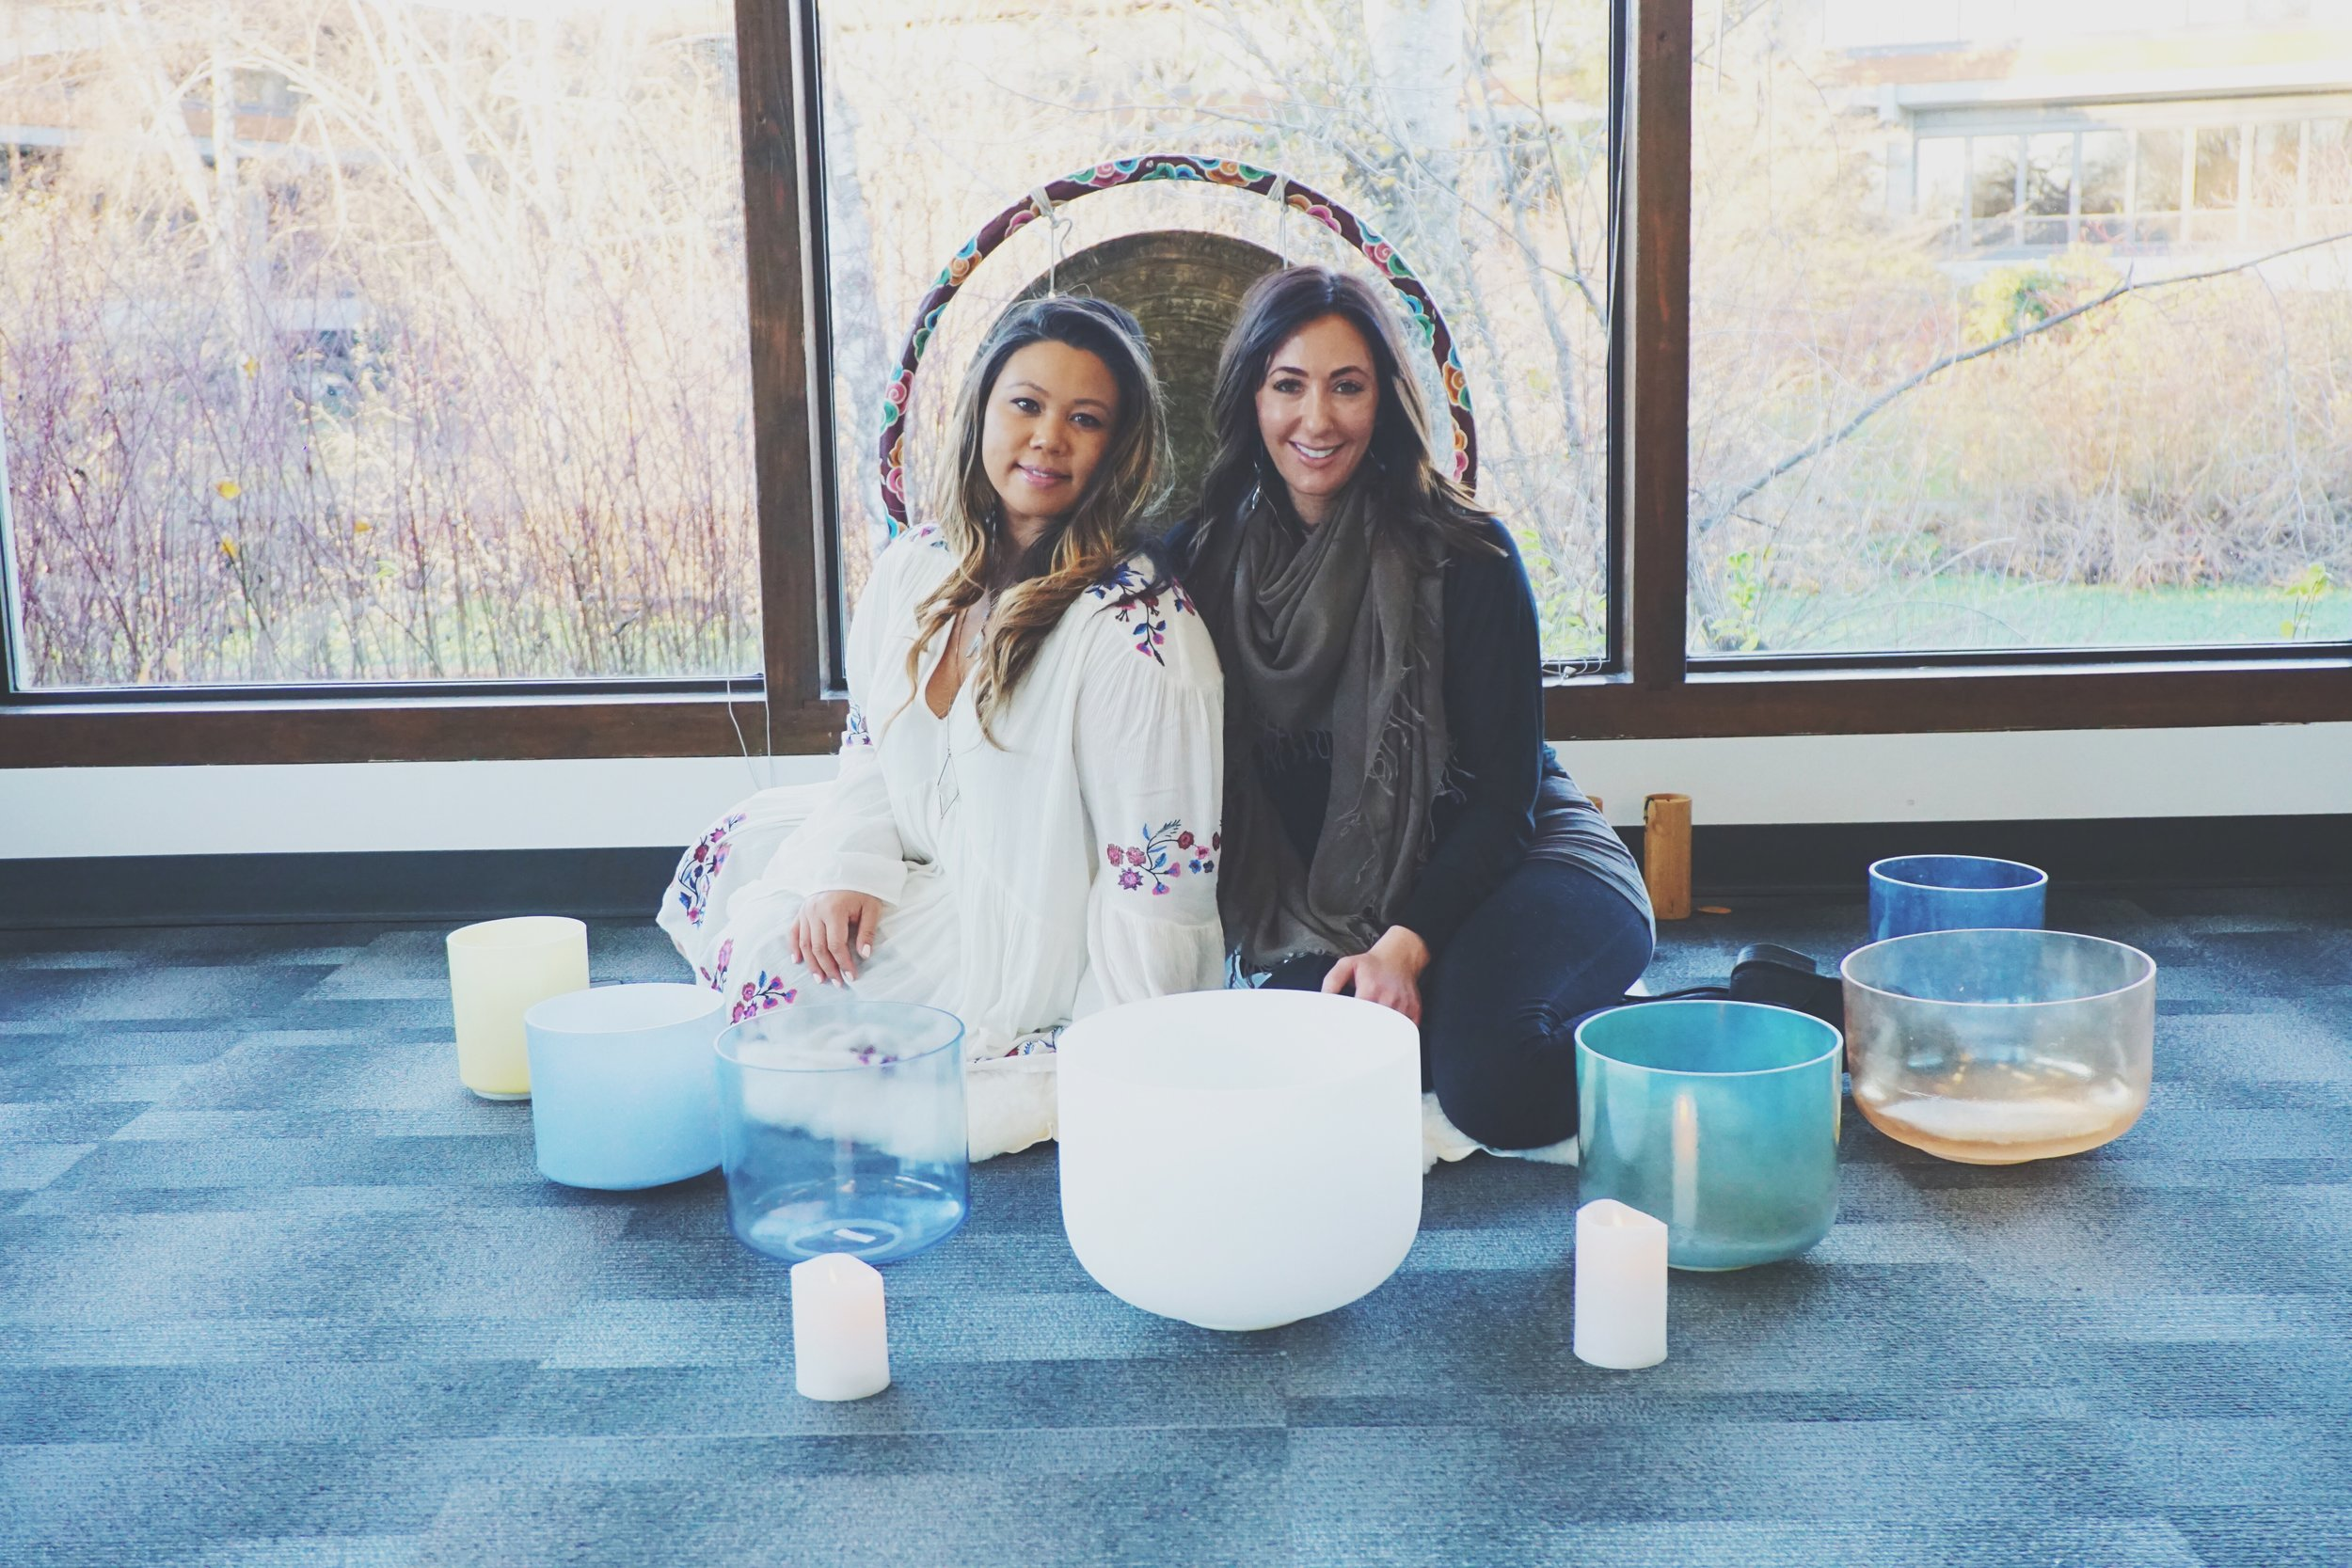 Jamie Cabaccang, Techies + Wellness Founder and Reiki Master (left) & Andrea Snetsinger, Sound Healer (right)